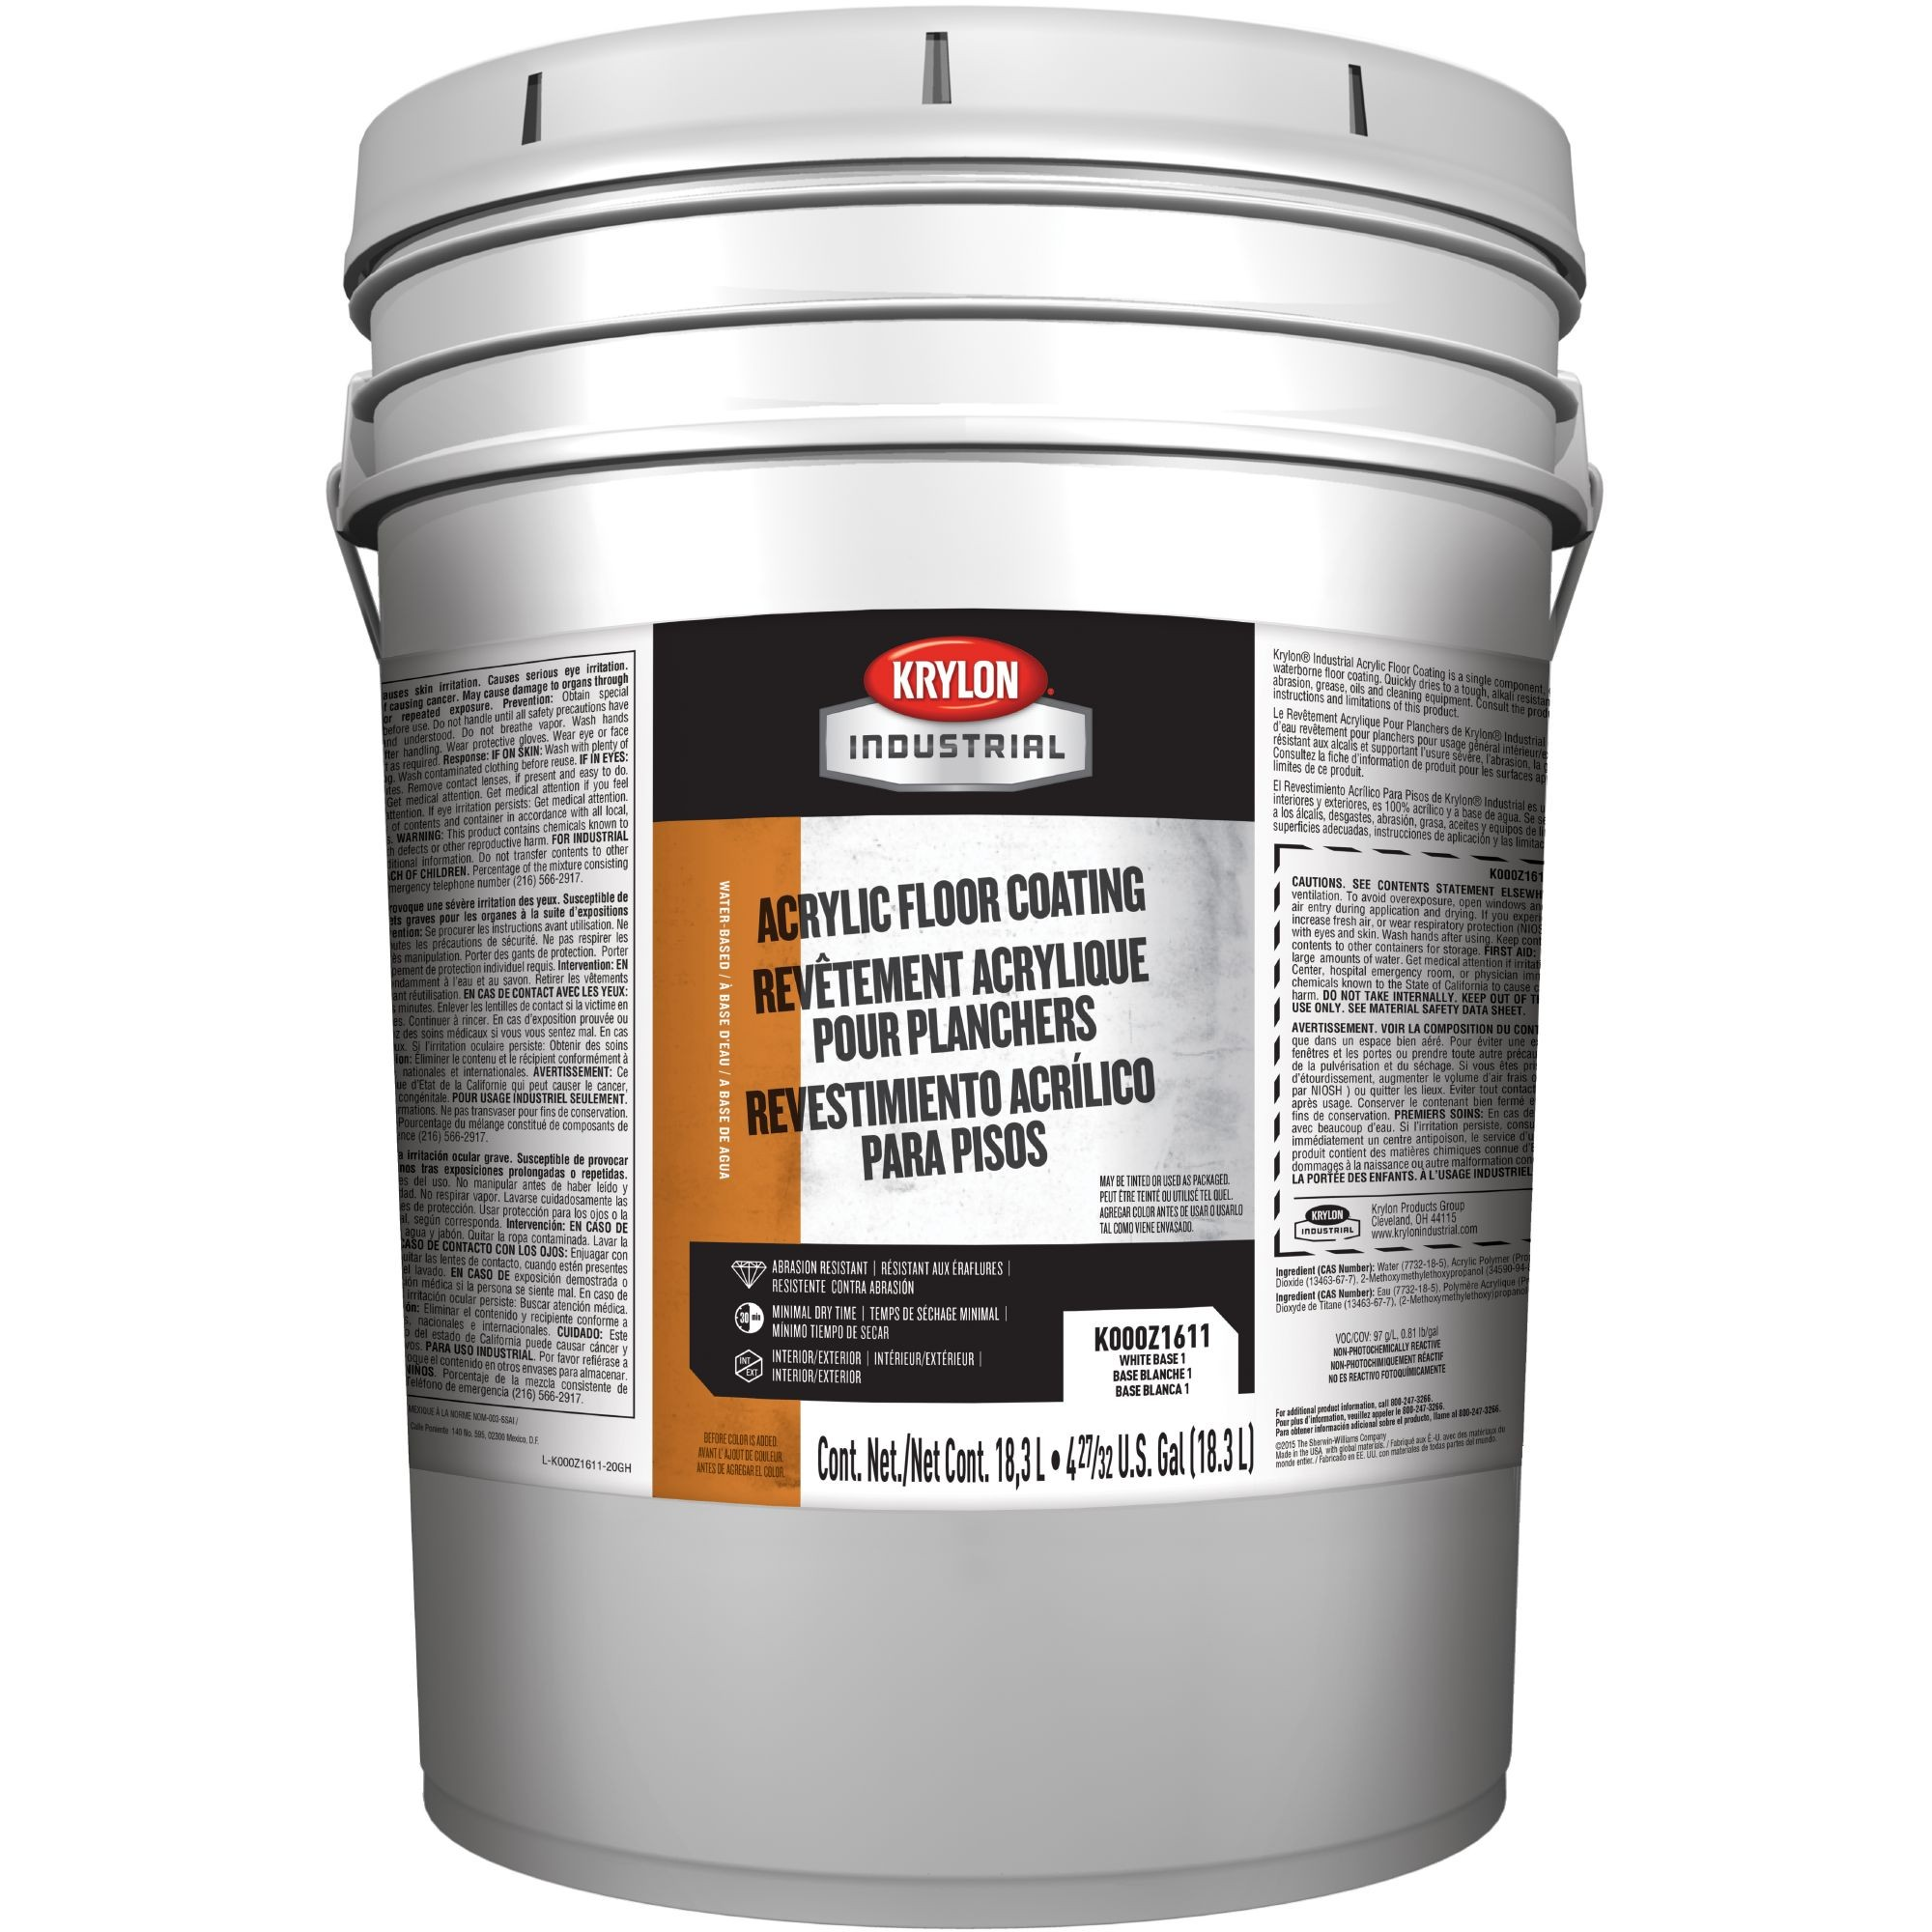 Krylon K000z1611 20 Acrylic Floor Coating White Base 1